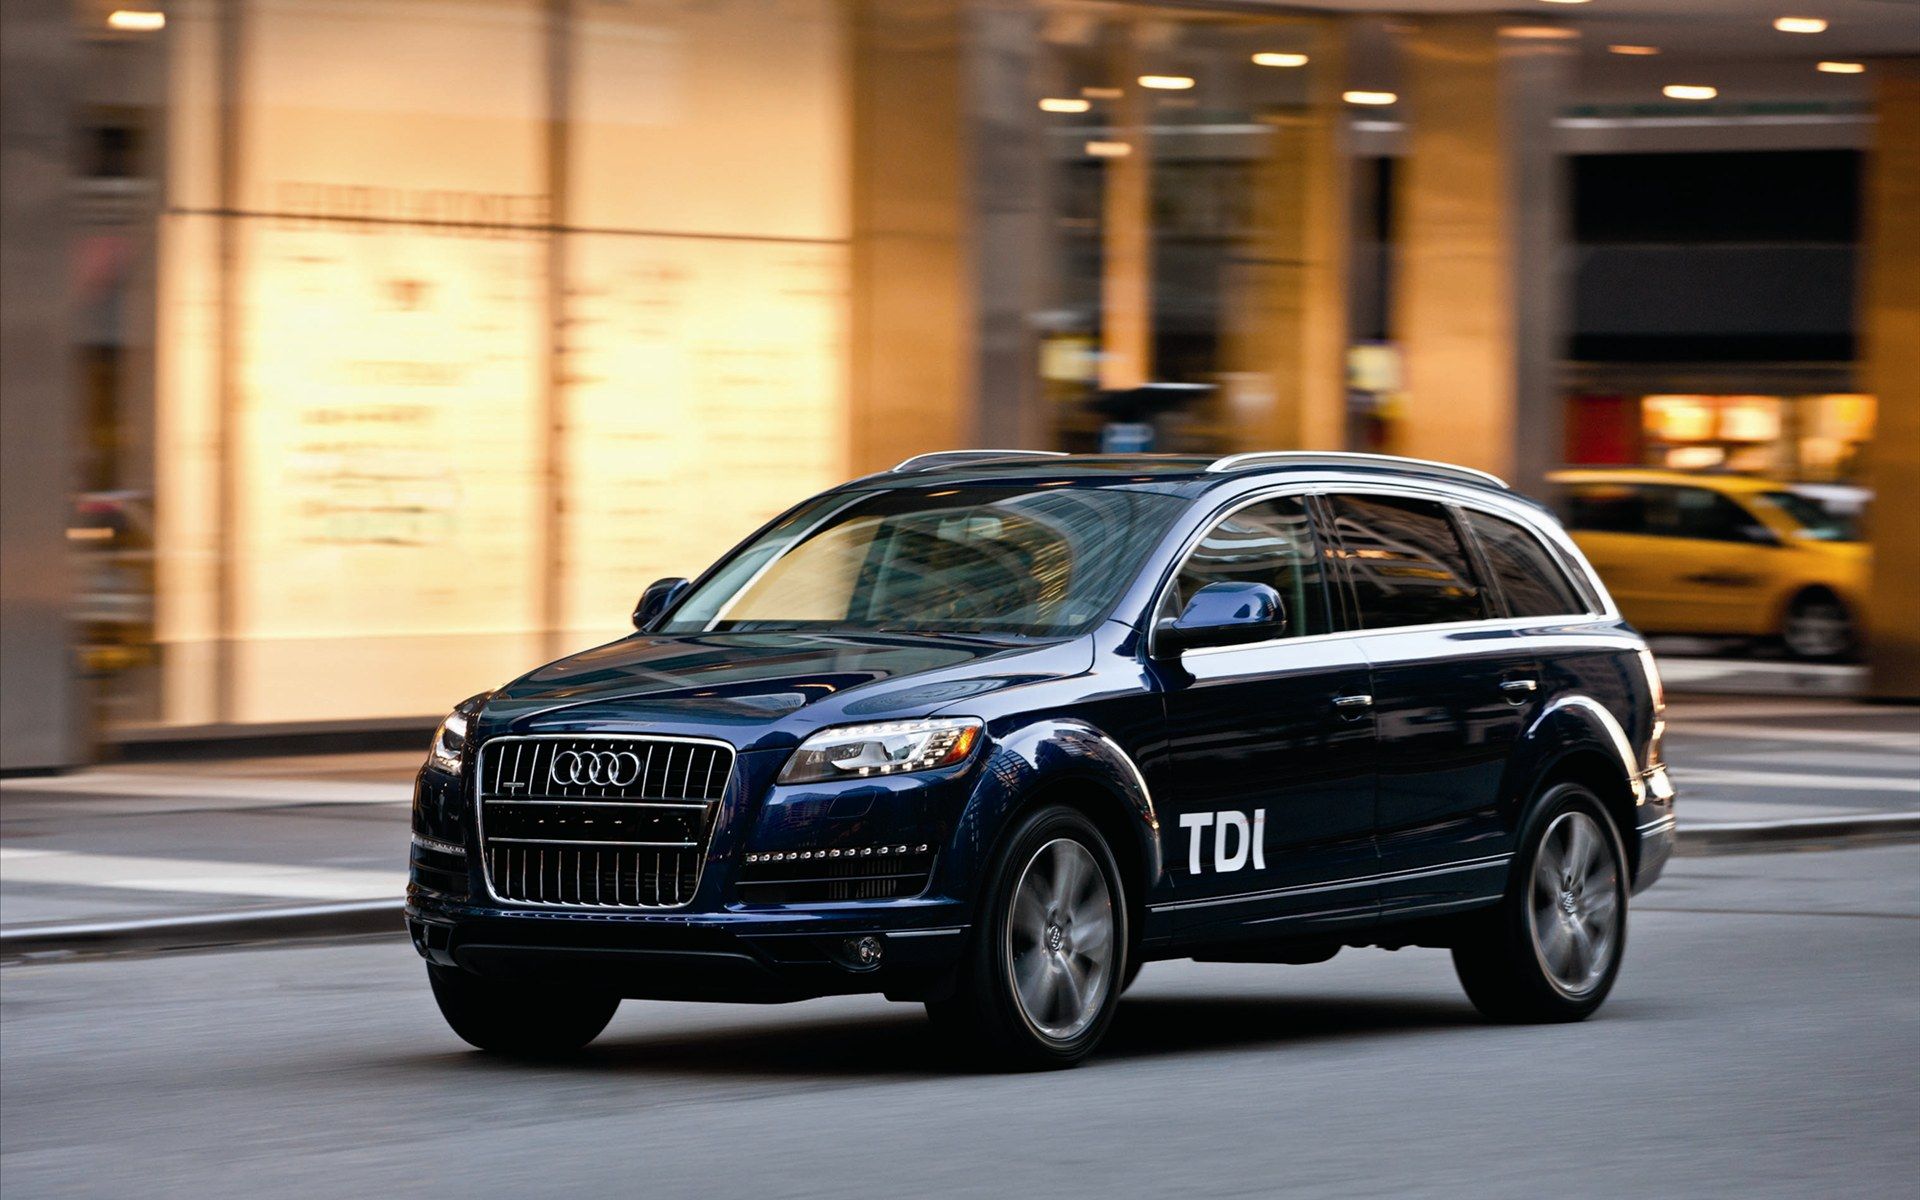 Audi Q7 Tdi 2012 Wallpaper Hd Car Wallpapers Id 2373